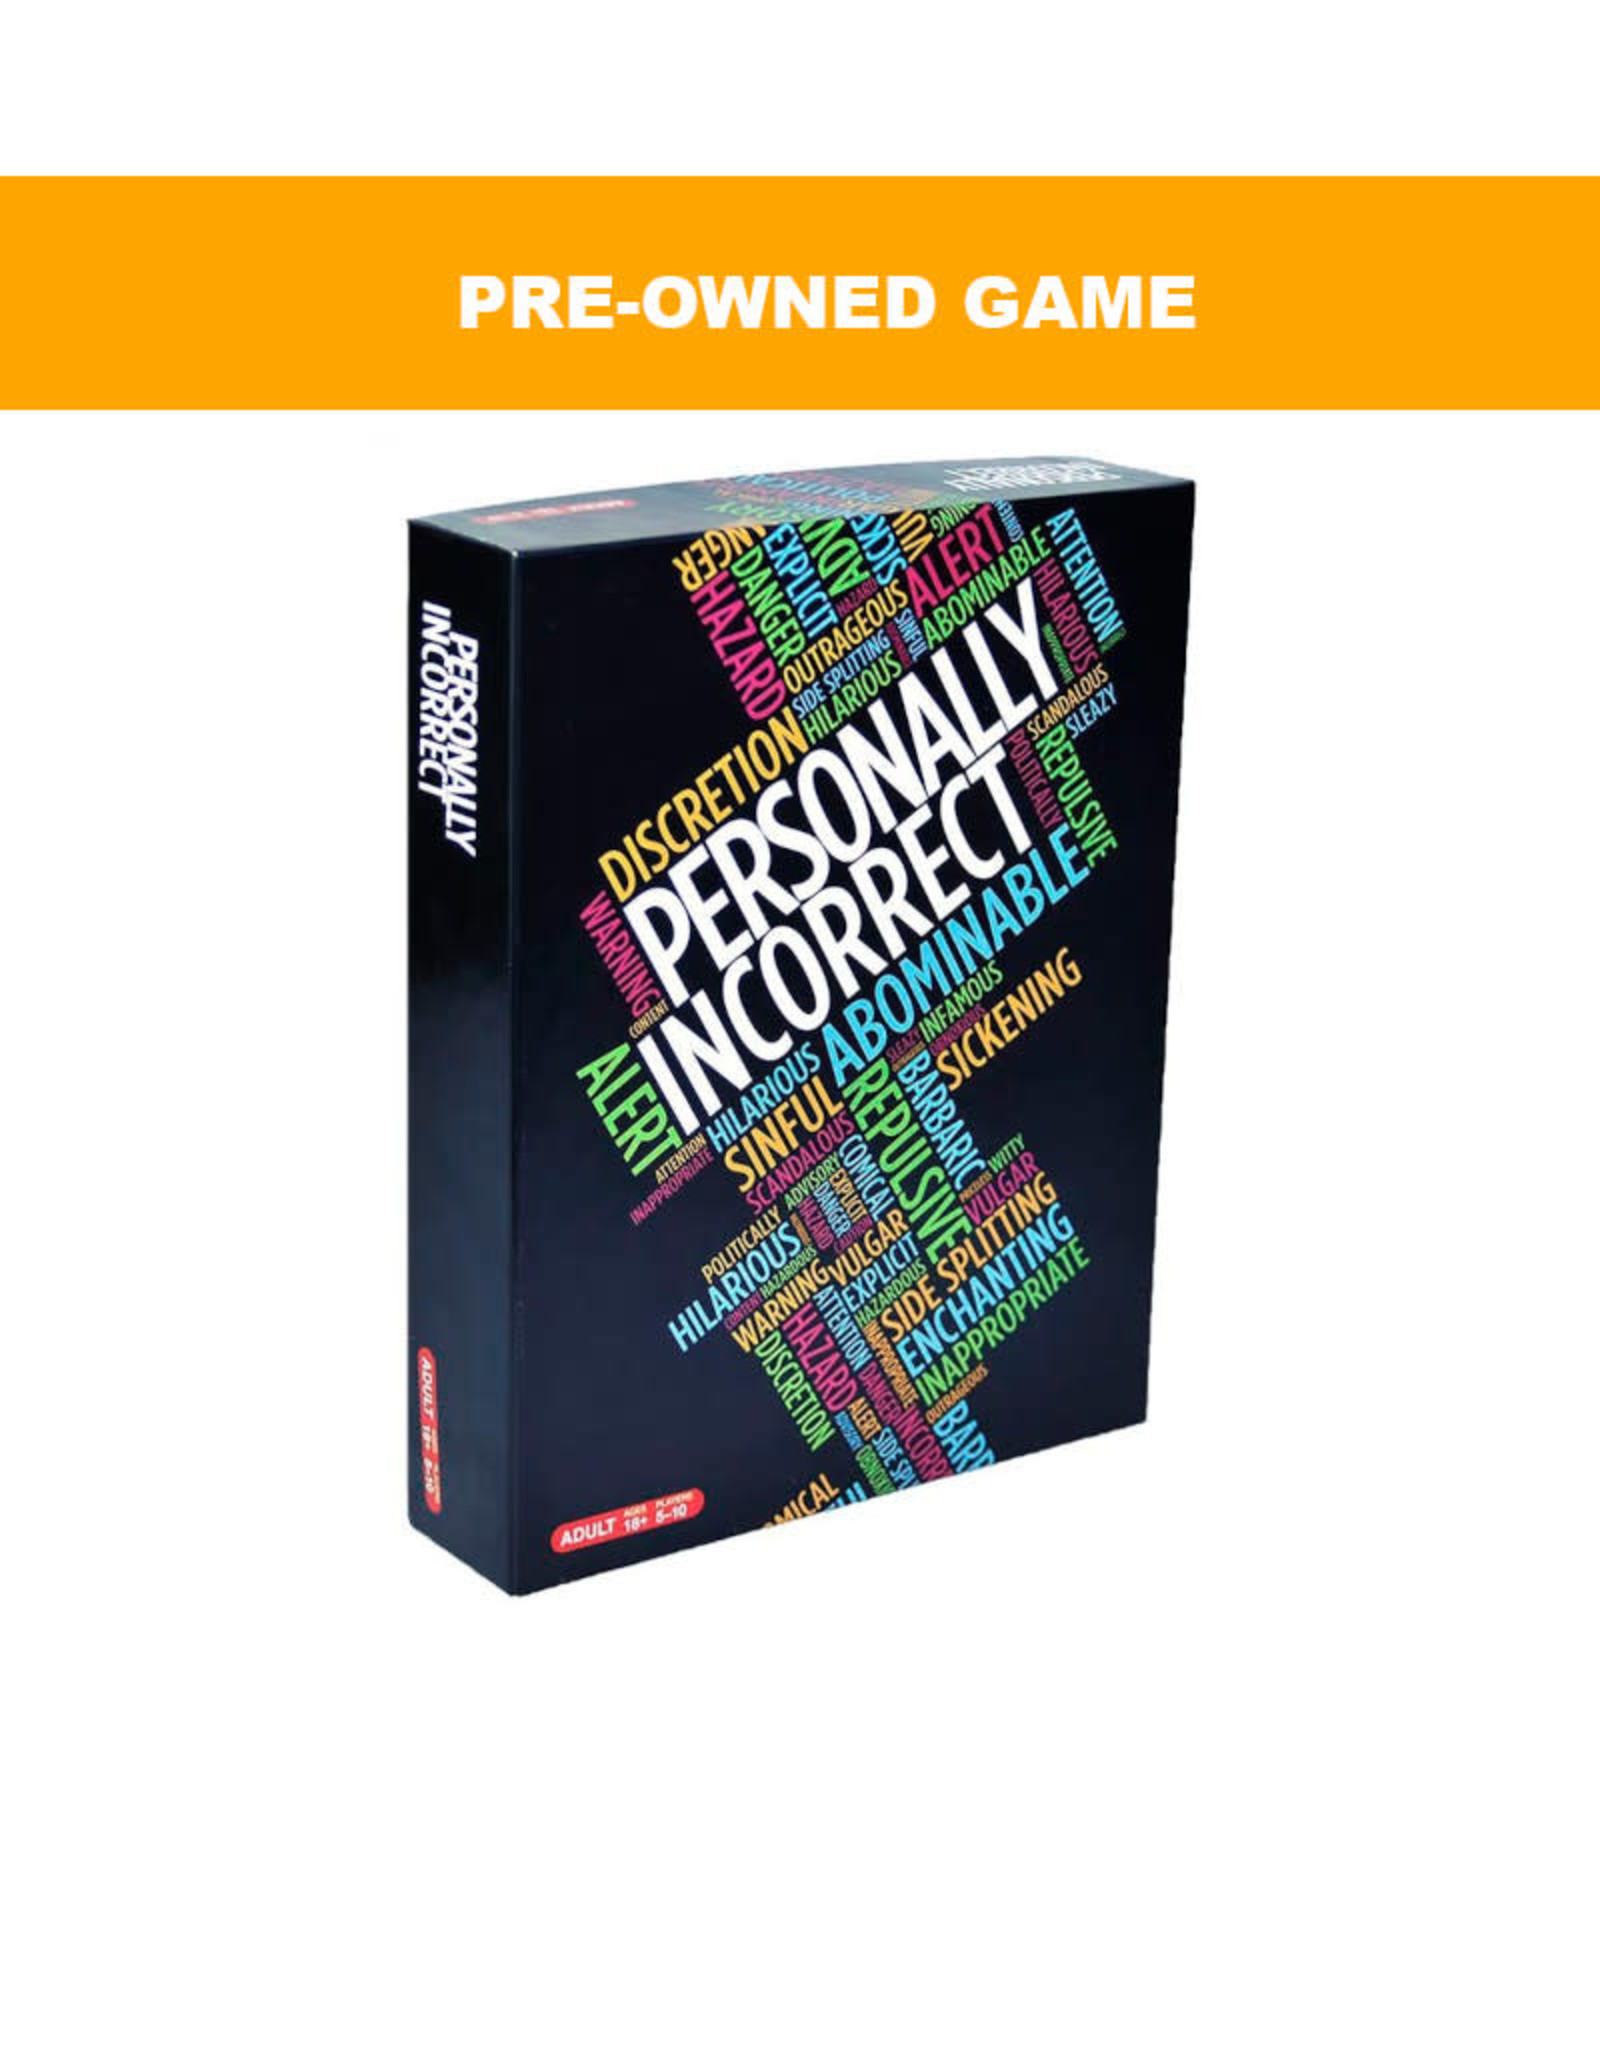 (Pre-Owned Game)  Personally Incorrect